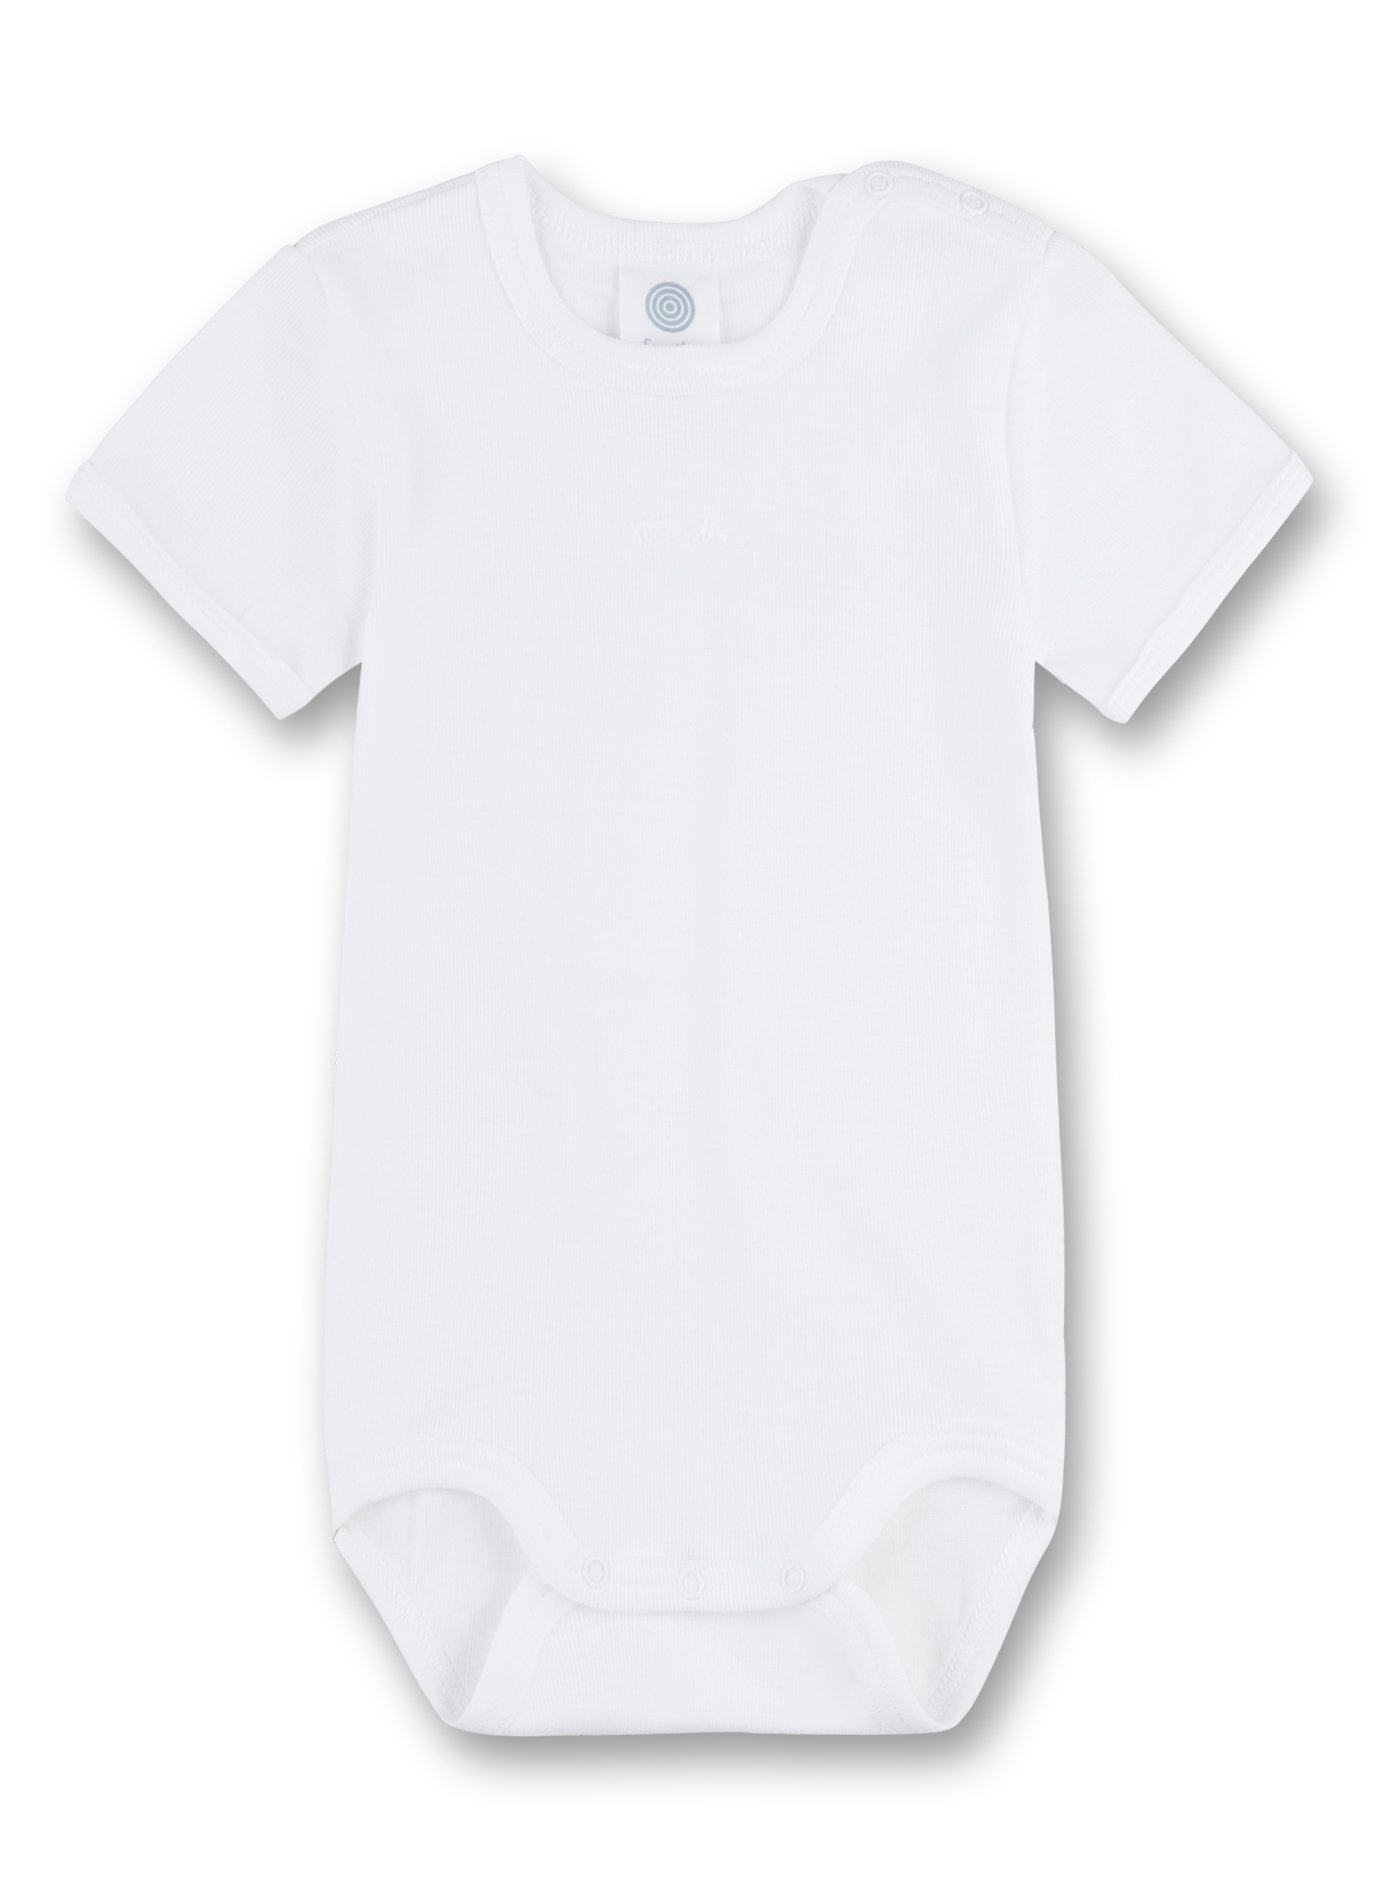 e0715548a061 Sanetta 320500 - Body kurzarm, Basic Collection, Organic Cotton weiss  product image